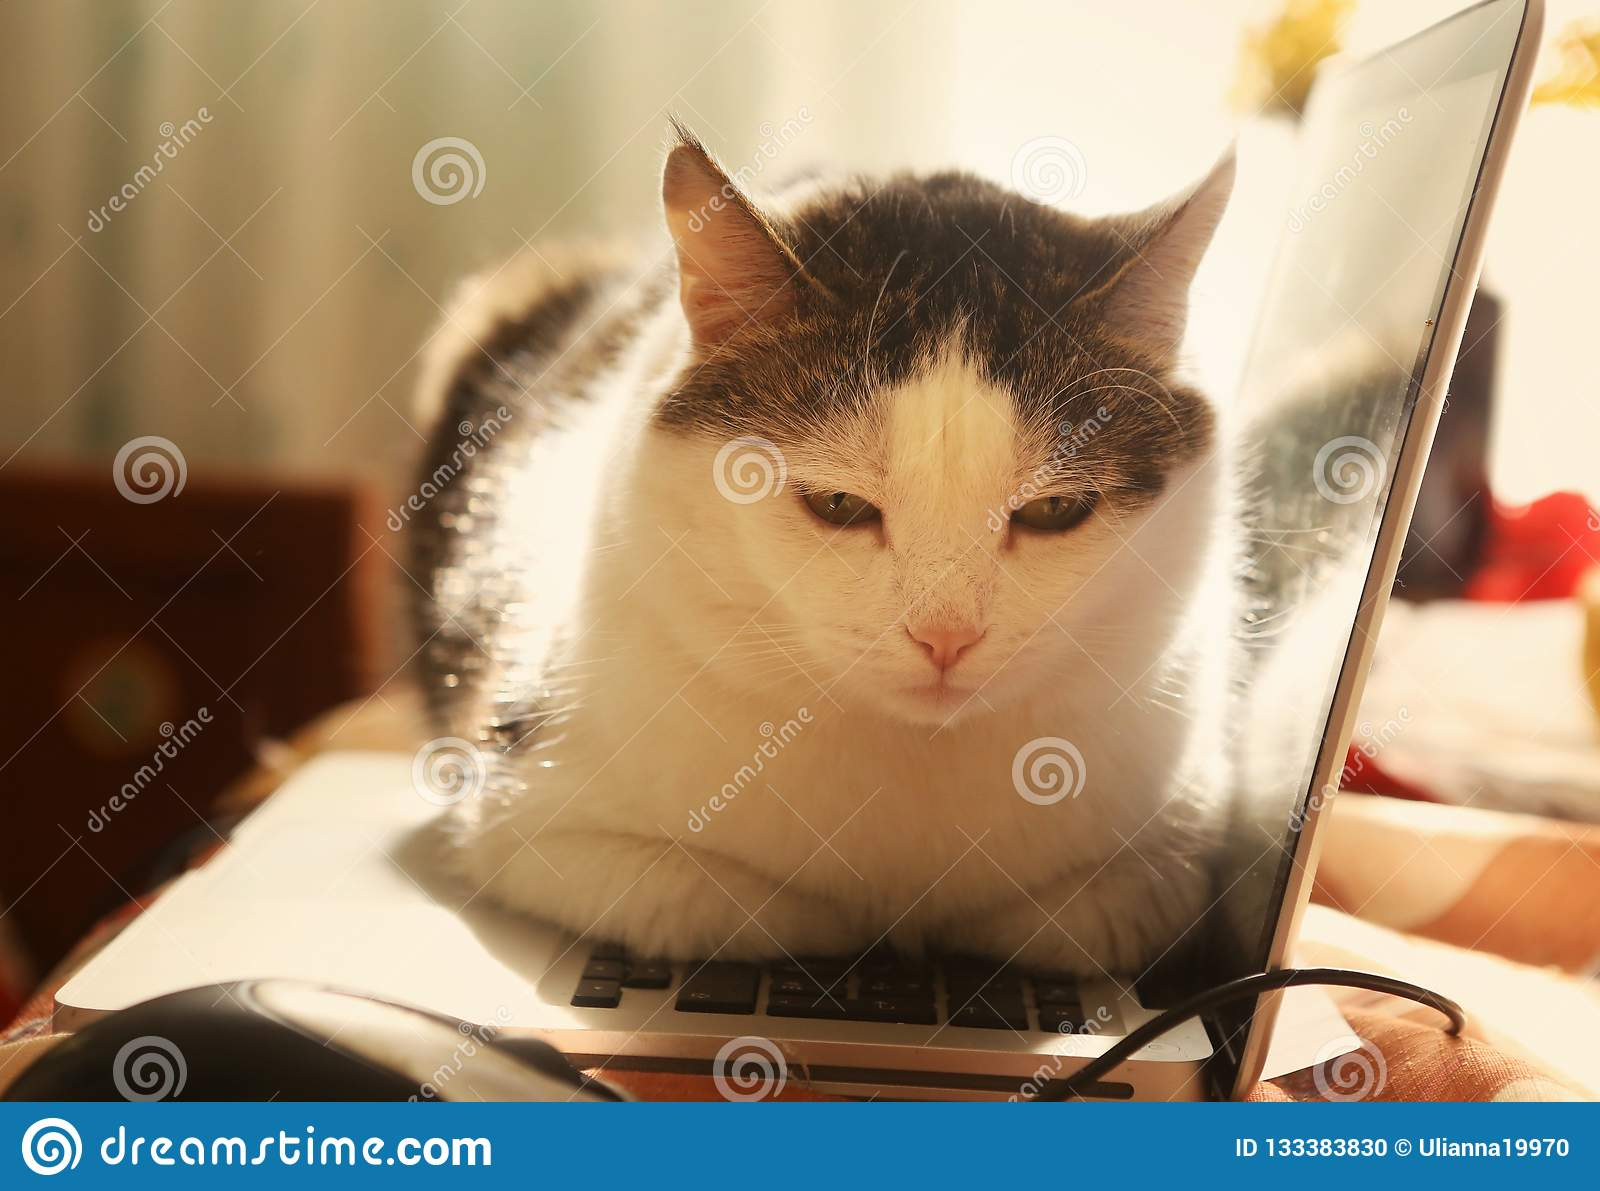 Cute cat lay resting on laptop keyboard